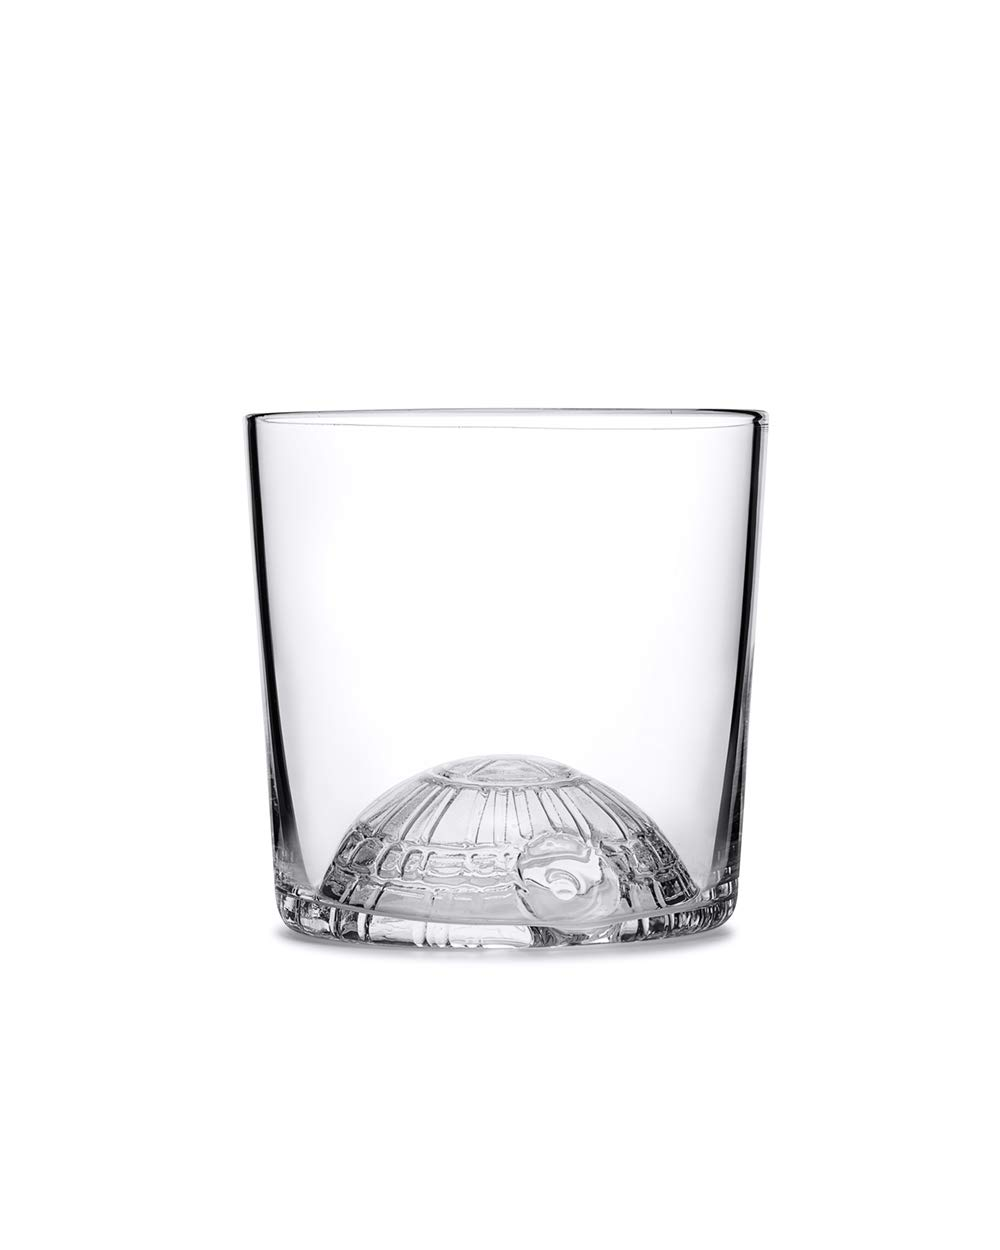 W&P WPSW-DSGLASS Limited Star Wars Collection Death Star Juice Glass, Whiskey, Cocktail, Tumbler Glass, Set of 2 by W&P